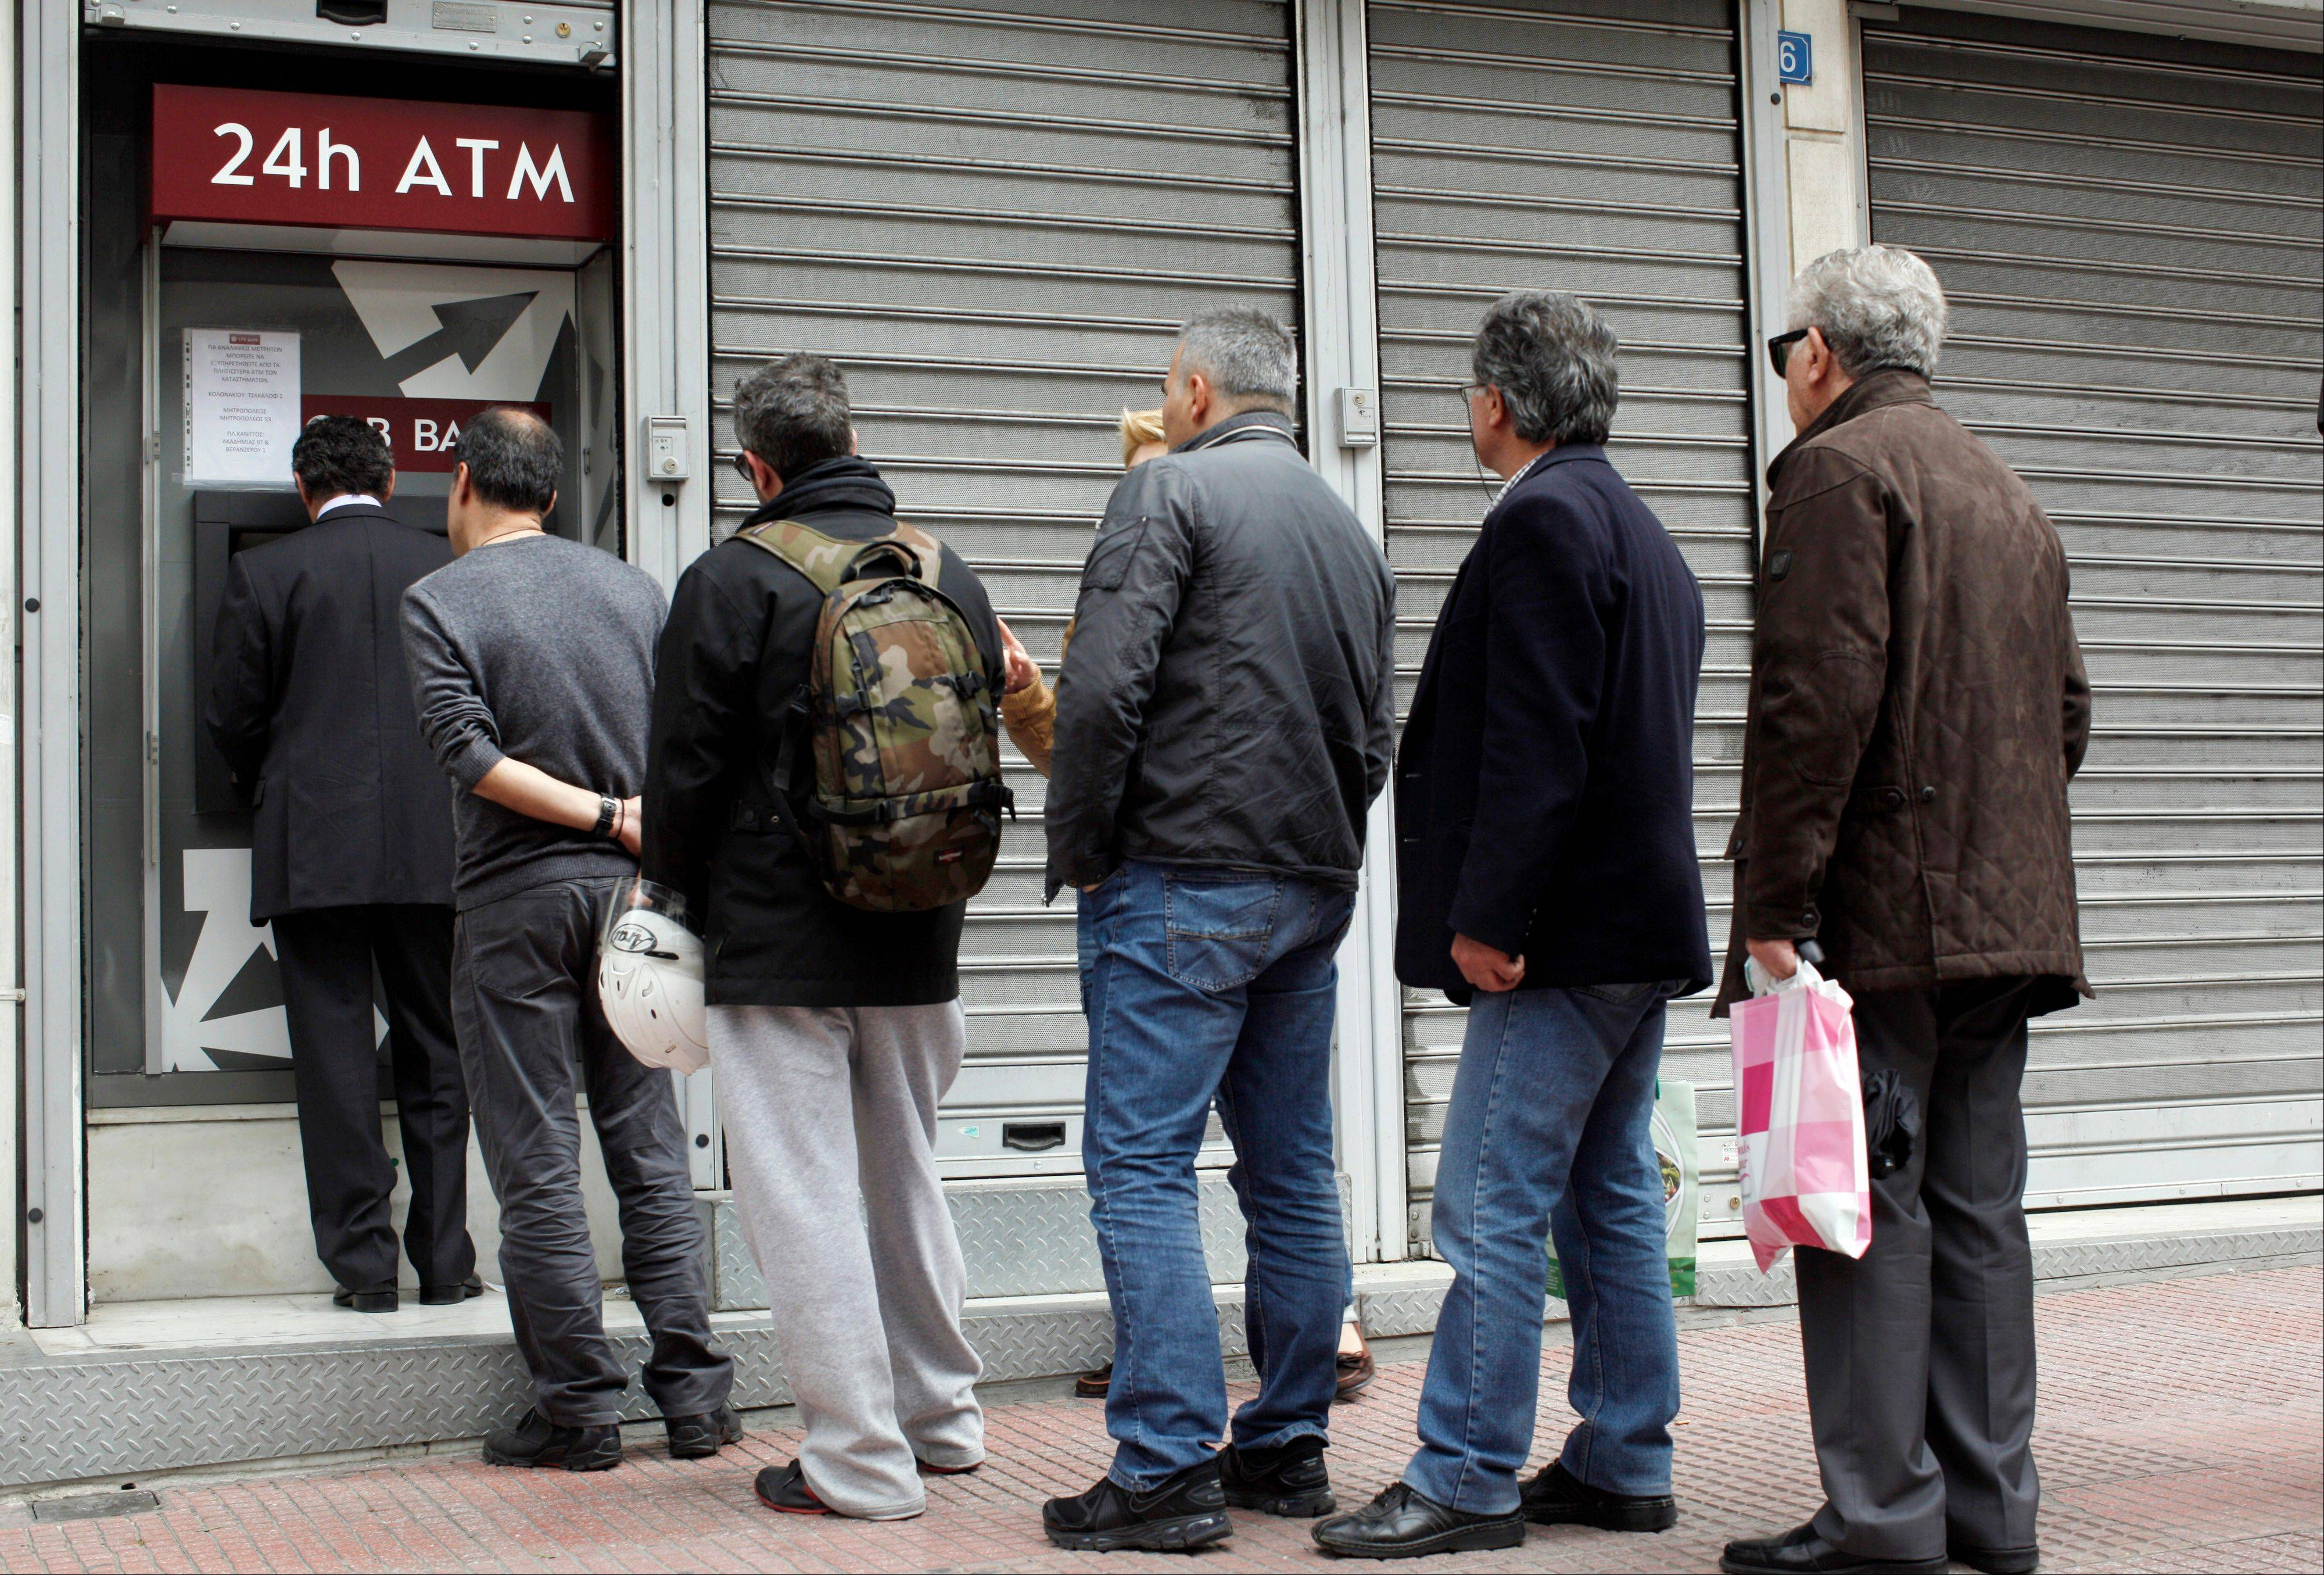 Customers wait to withdraw money from an ATM outside a closed branch of CPB Bank, part of Cyprus Popular Bank Pcl, also known as Laiki Bank in Athens, Greece, on Thursday, March 21, 2013. Branches of Cypriot lenders in Greece will remain closed on March 21 and March 22 following a decision of the Central Bank of Cyprus, Greece's Finance Ministry said in an emailed statement today.